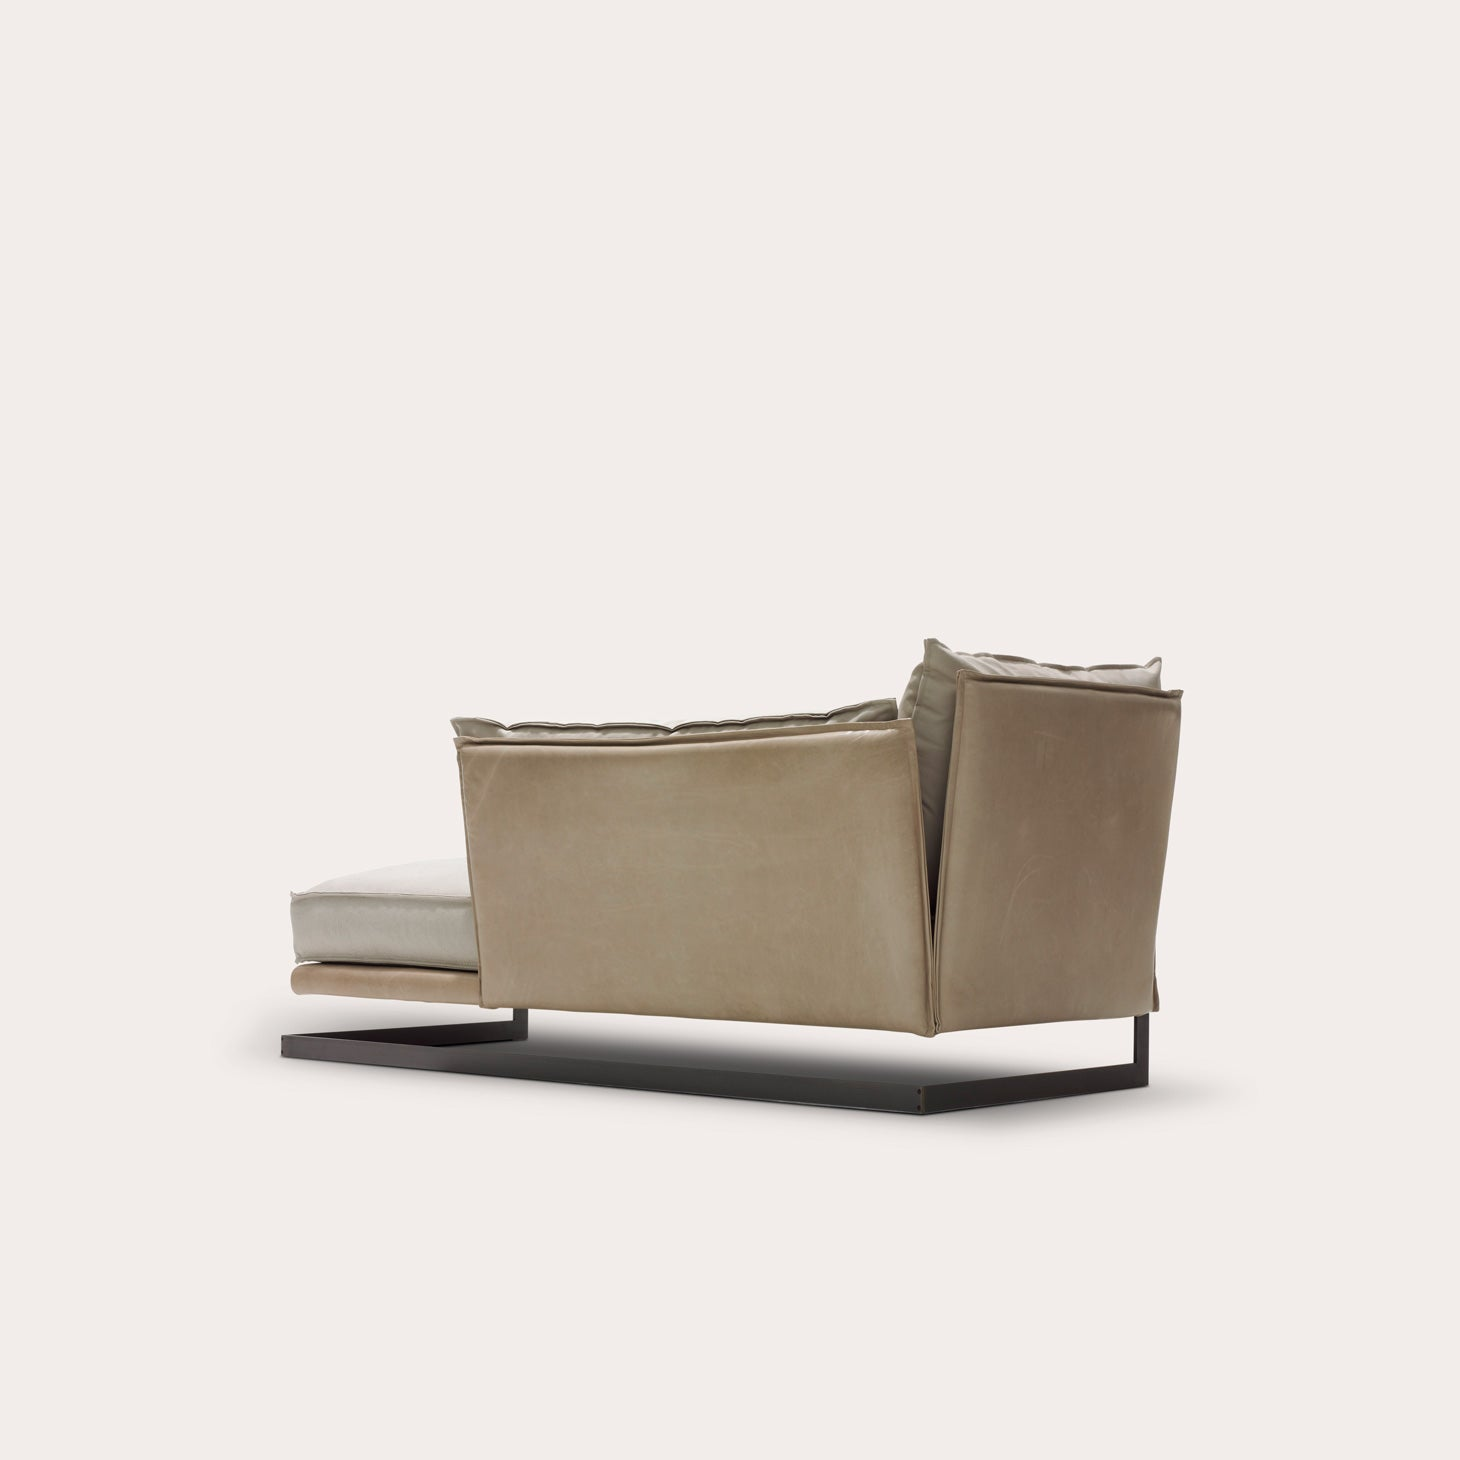 Mulberry Street Chaise Longue Seating Marcel Wolterinck Designer Furniture Sku 247 240 10360